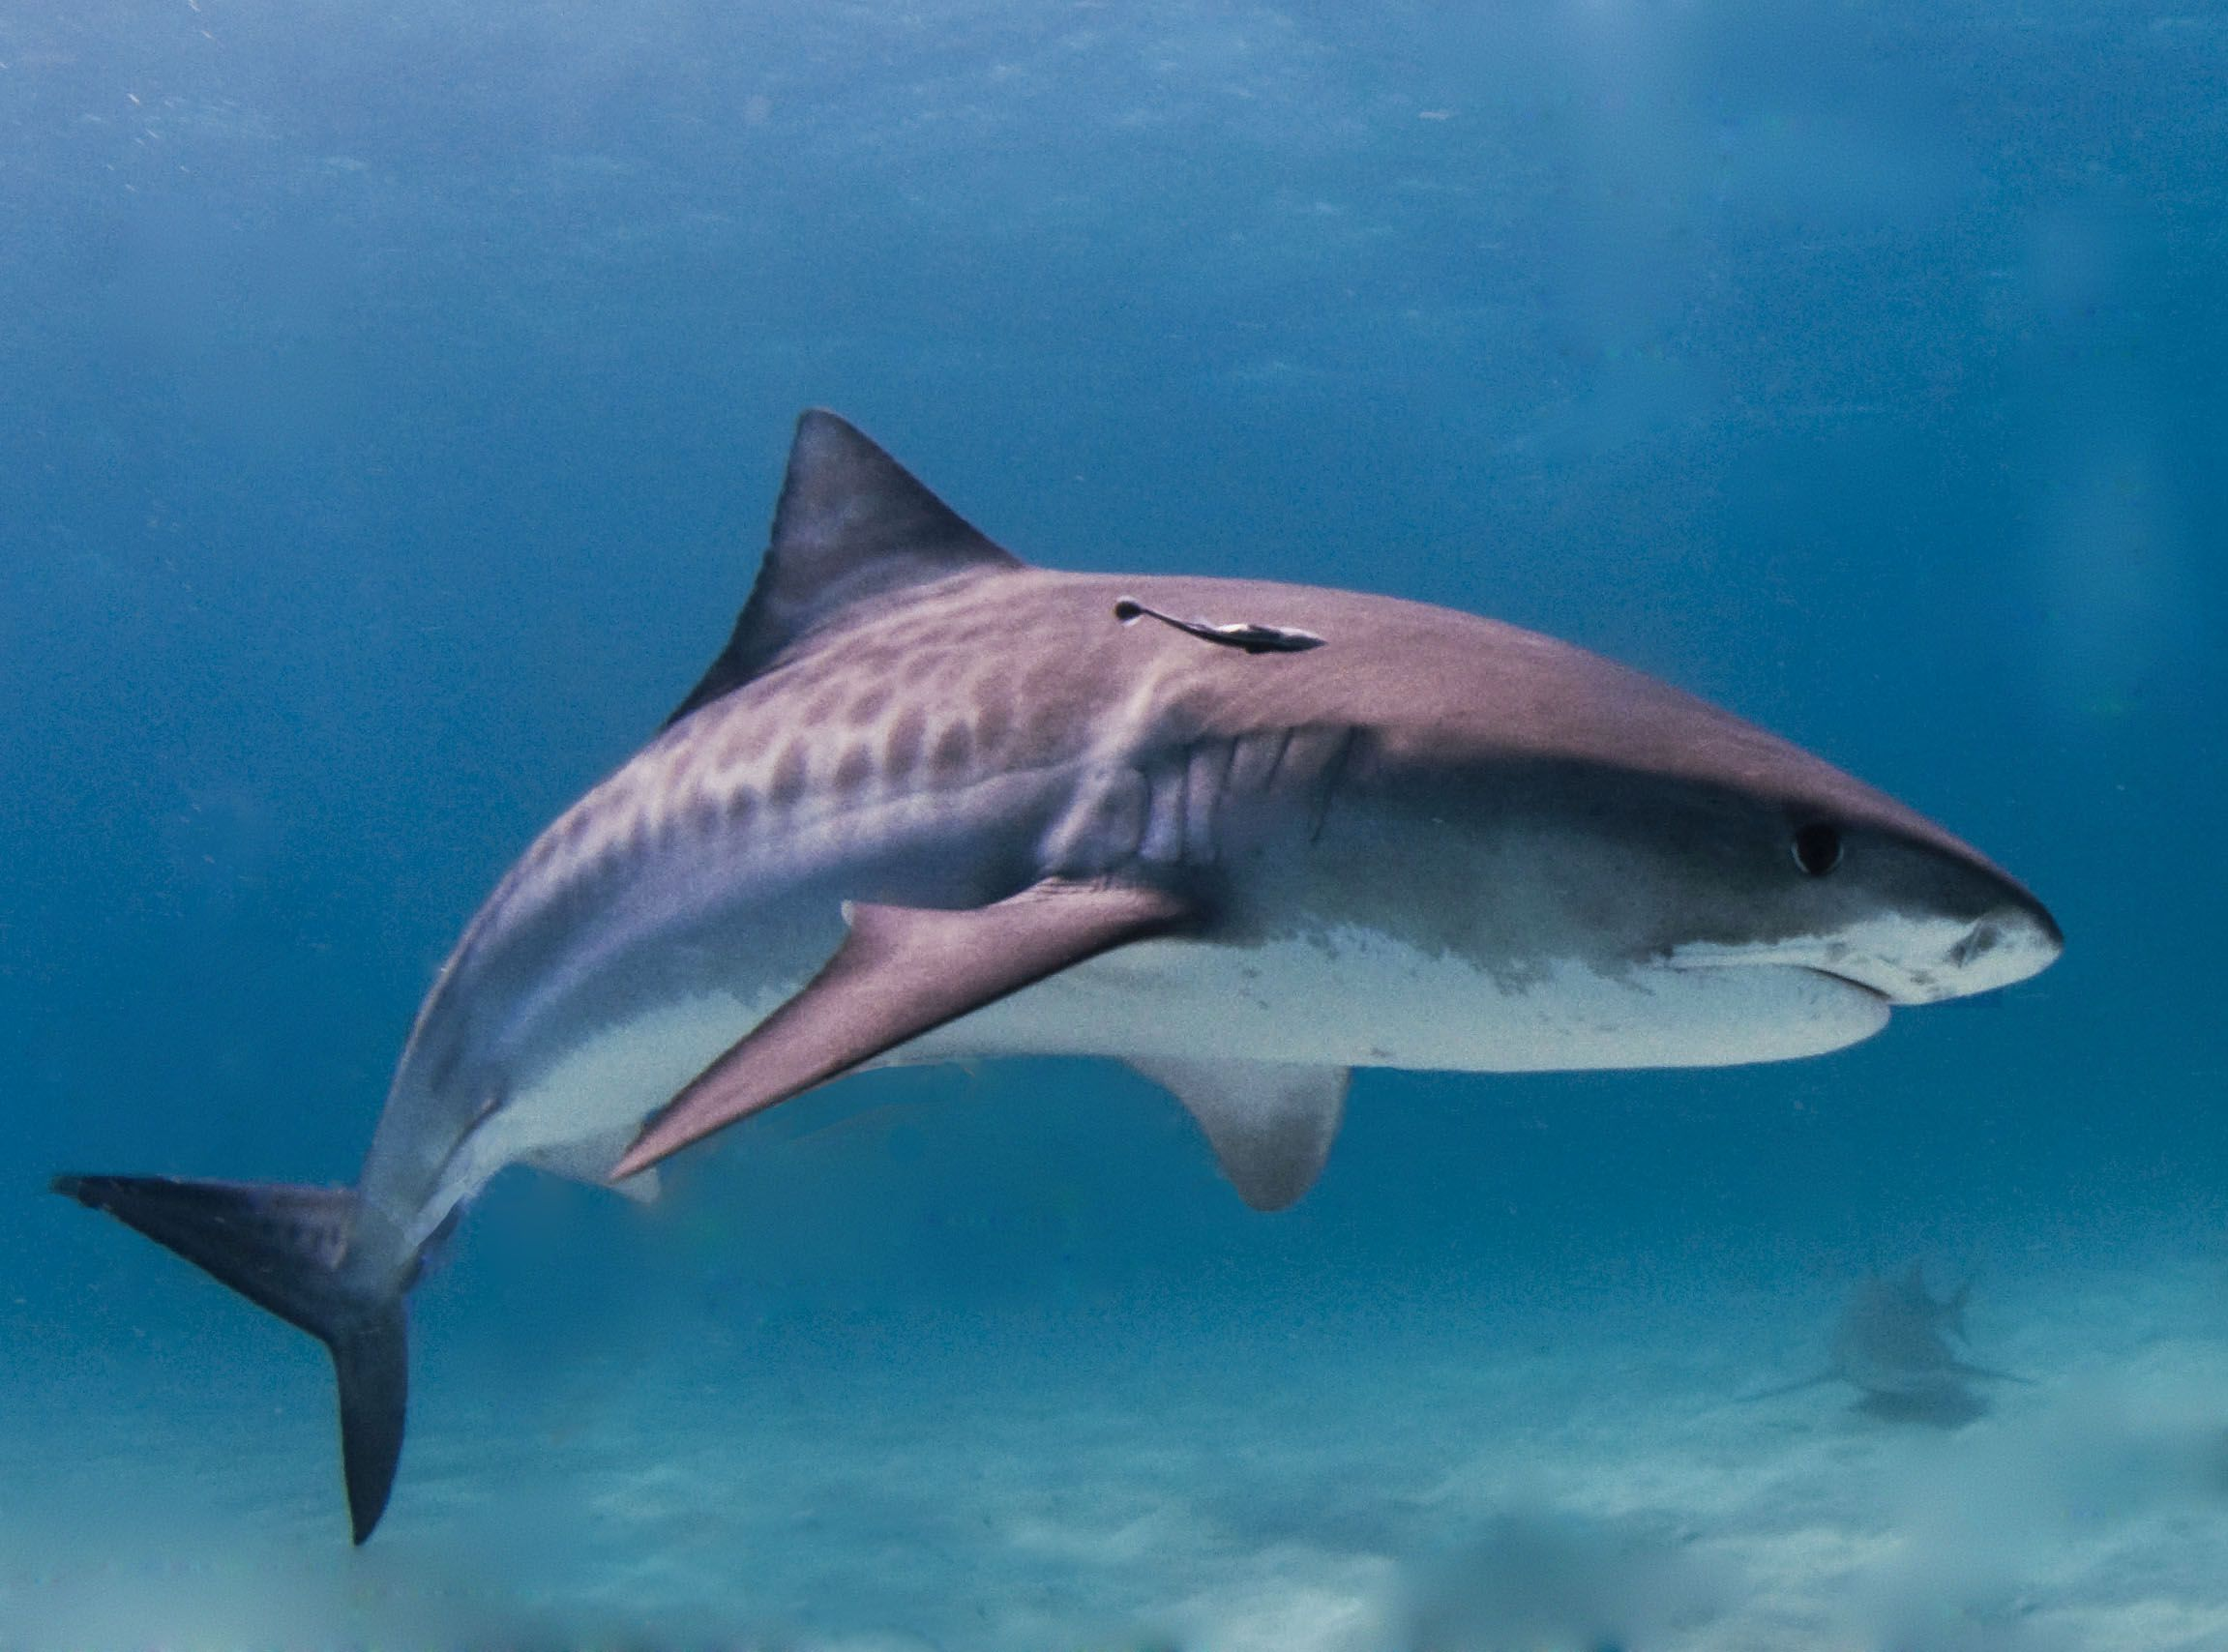 shark swim speed by species shark facts